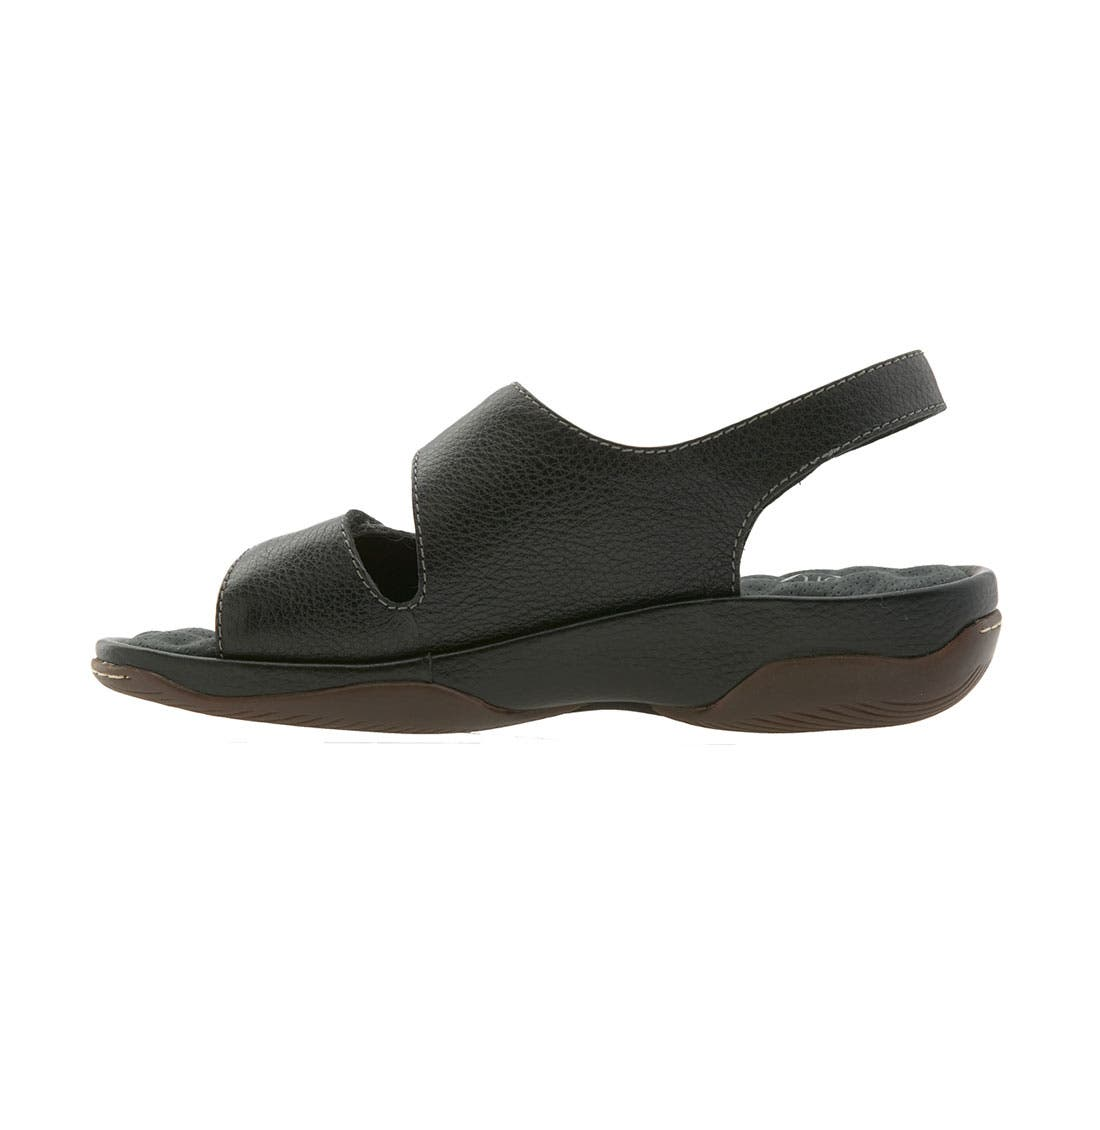 'Bolivia' Sandal,                             Alternate thumbnail 4, color,                             BLACK